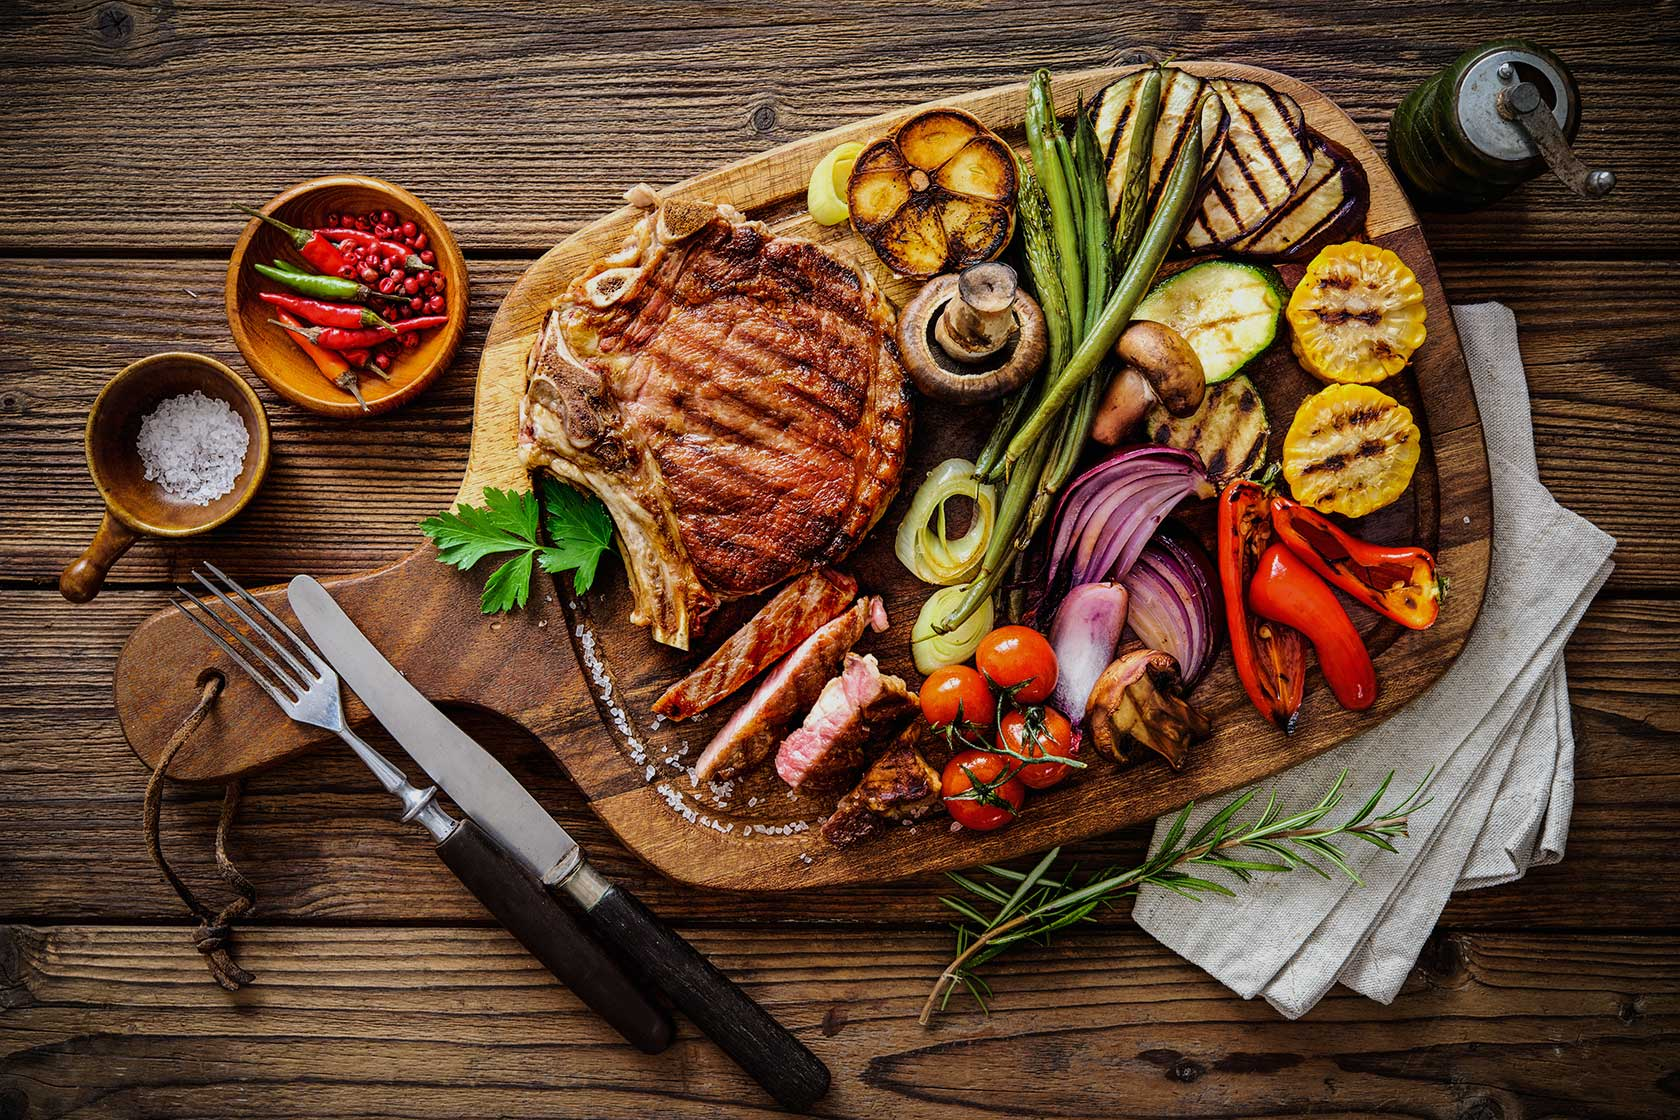 The HCG Diet's Food List | APPROVED Foods